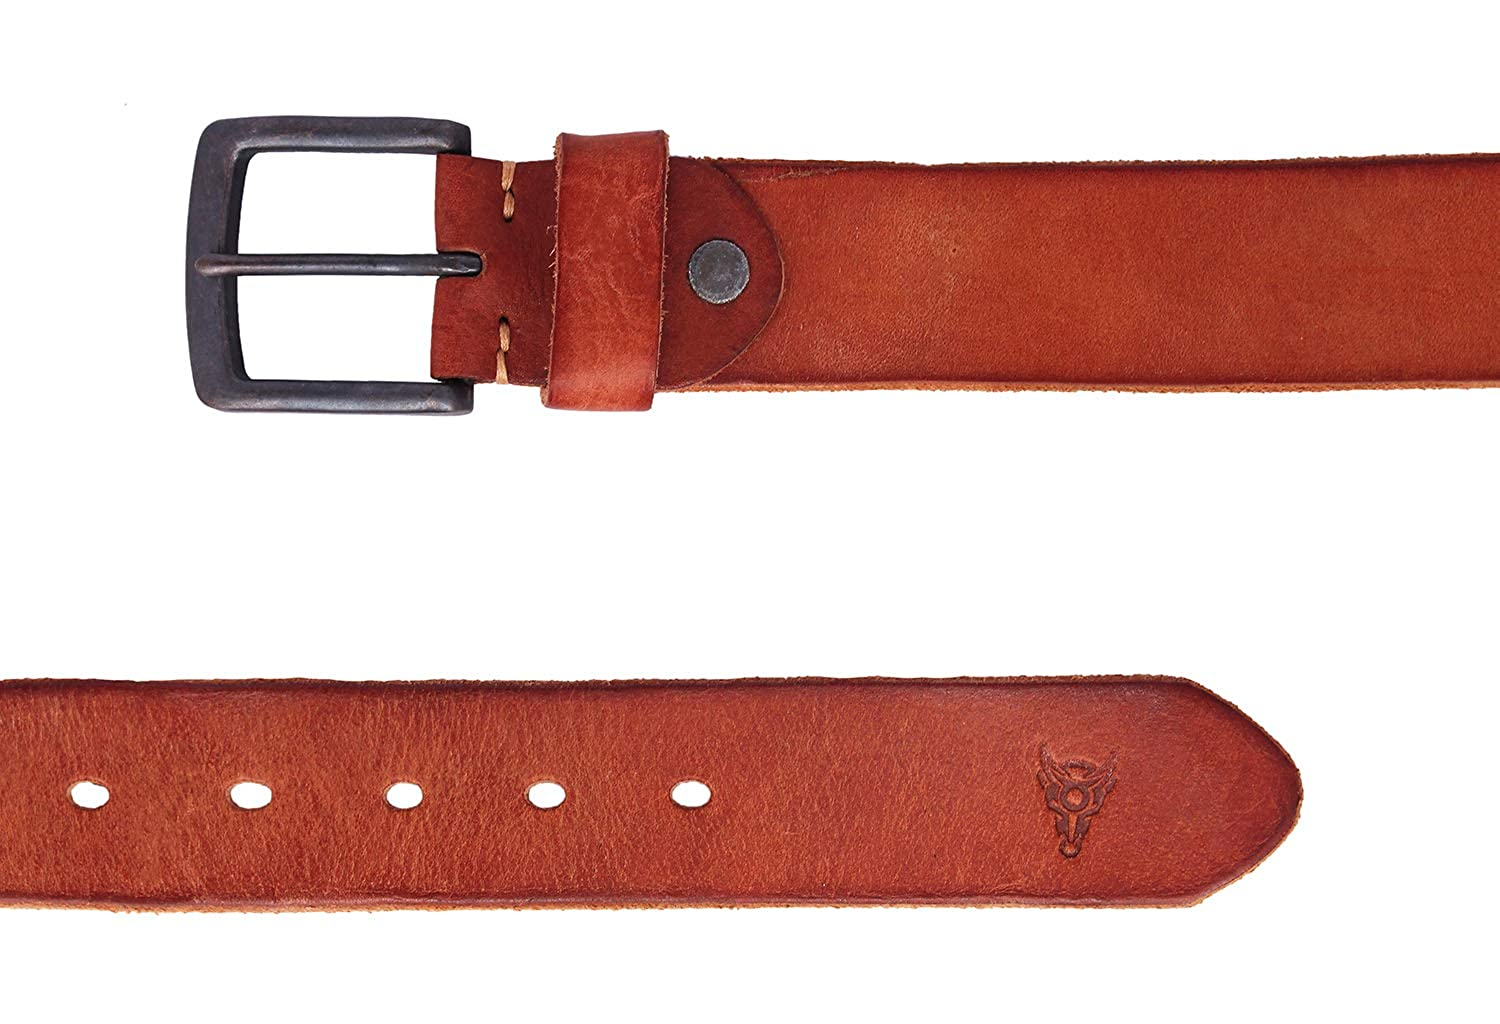 Blackbuck Premium Leather Belts Tan Color With Pin Lock Buckle For men